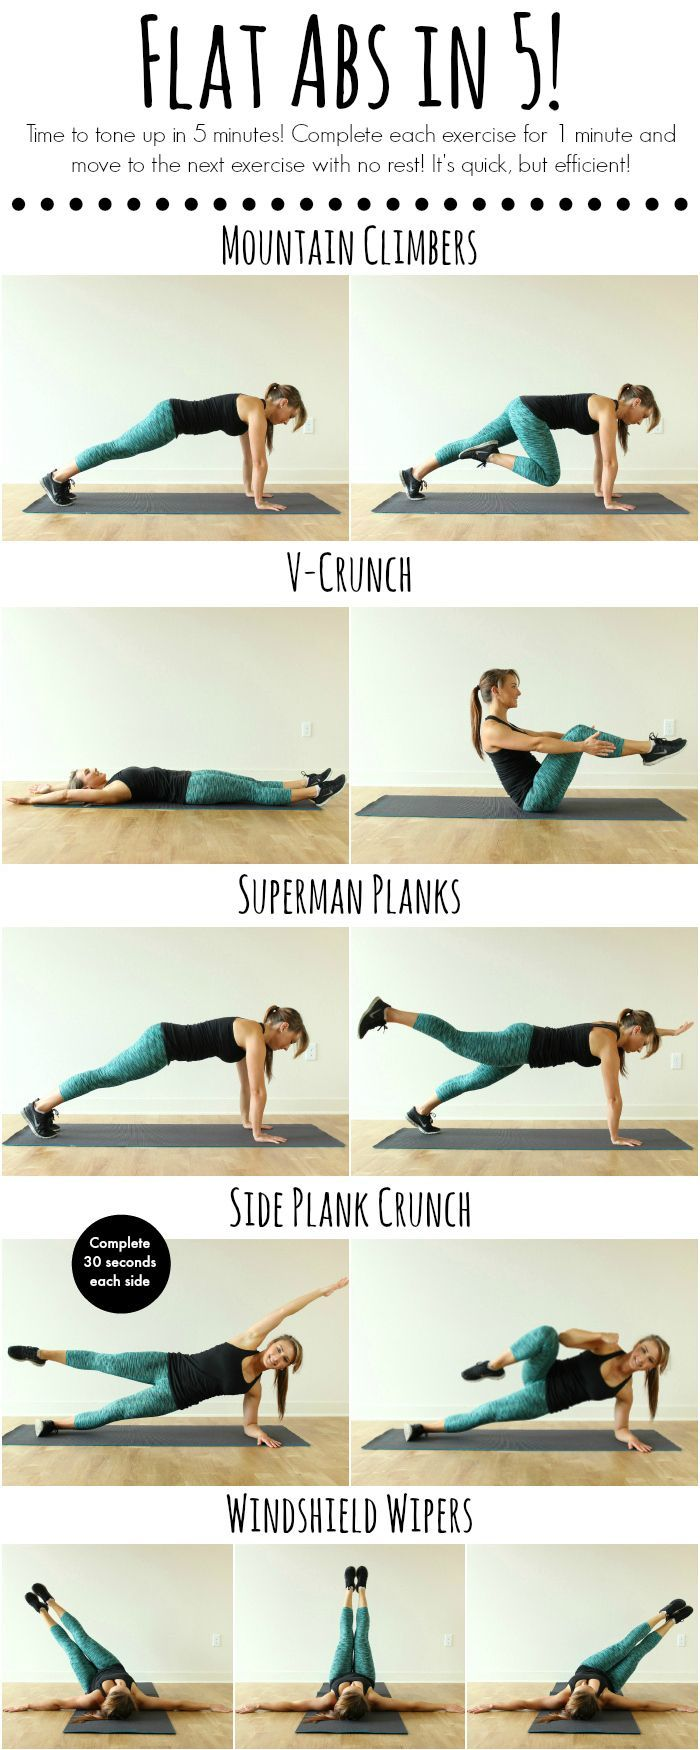 Amazing Flat Belly Workouts To Help Sculpt Your Abs  Workout